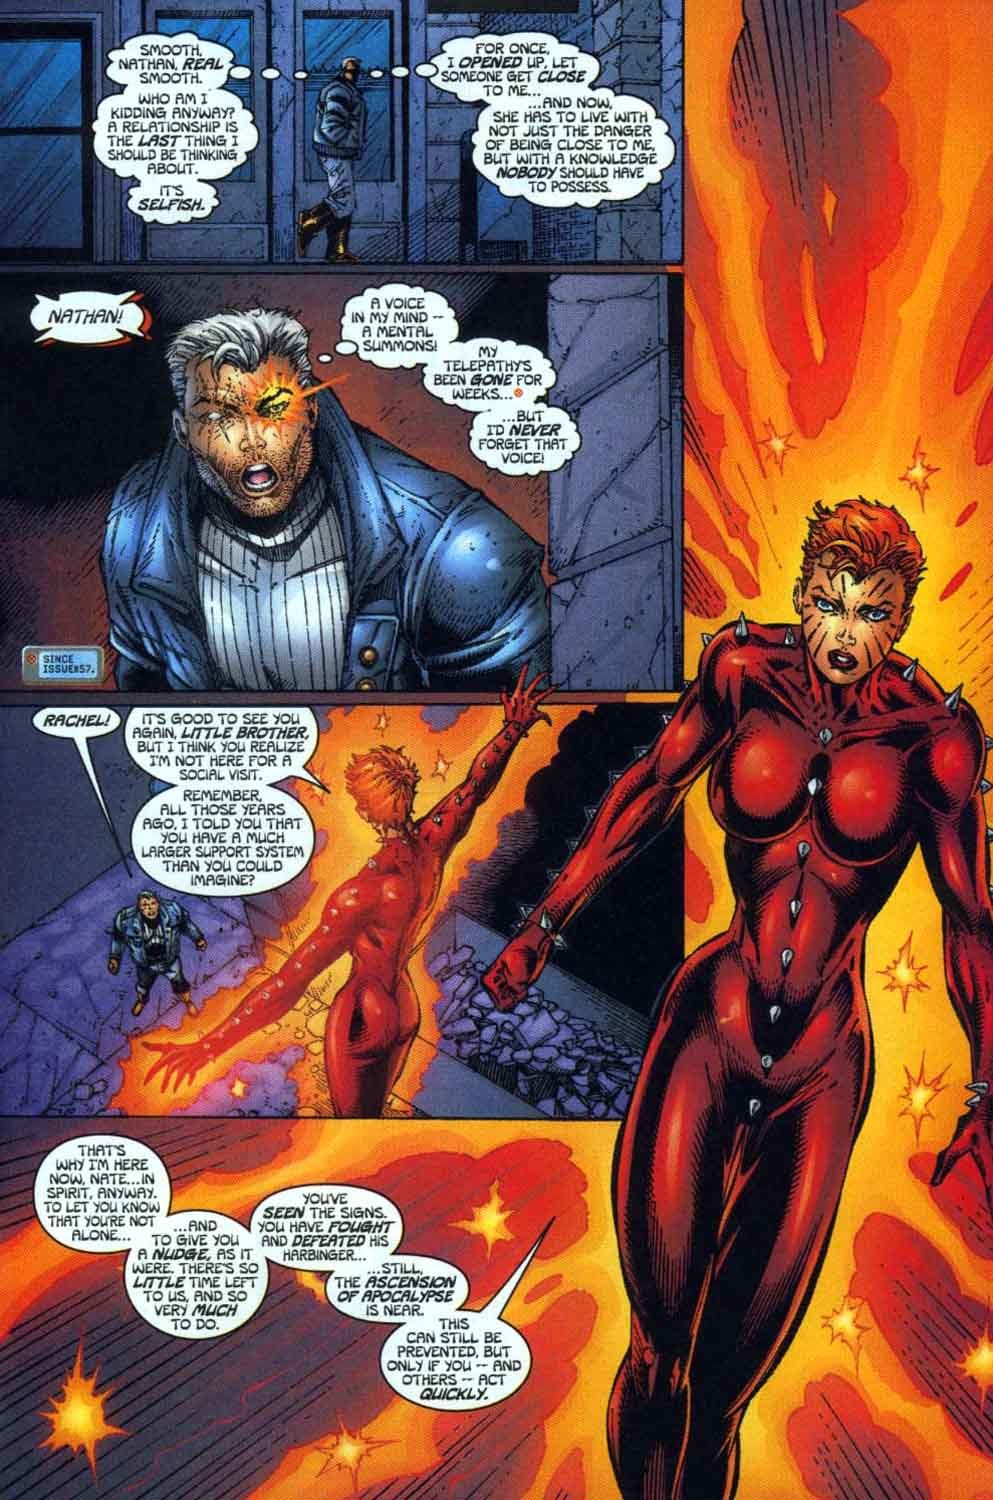 Return to the past as a spirit to prepare Cable for his coming fight with Apocalypse